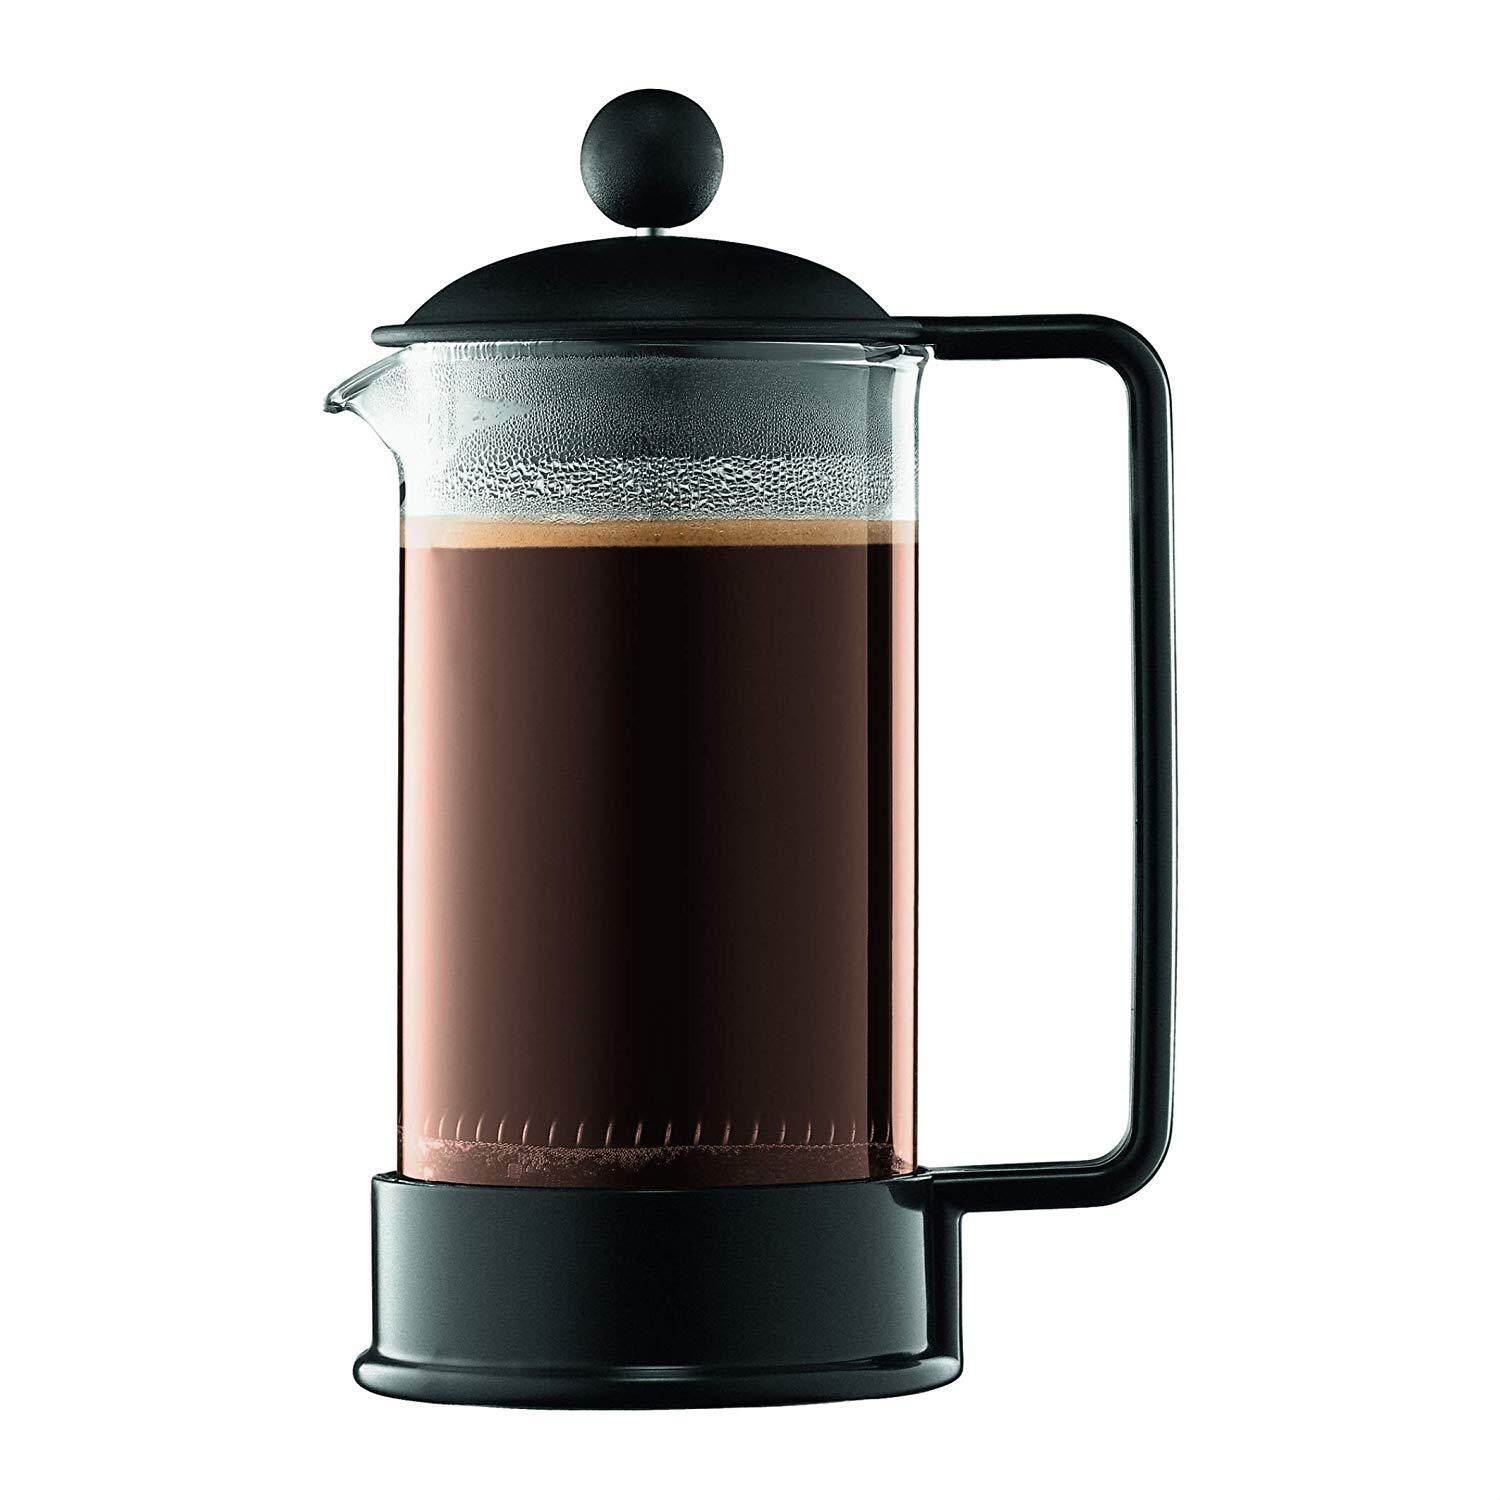 Bodum 1543-01US Brazil French Press Coffee and Tea Maker, 12 Ounce, Black, 3 cup